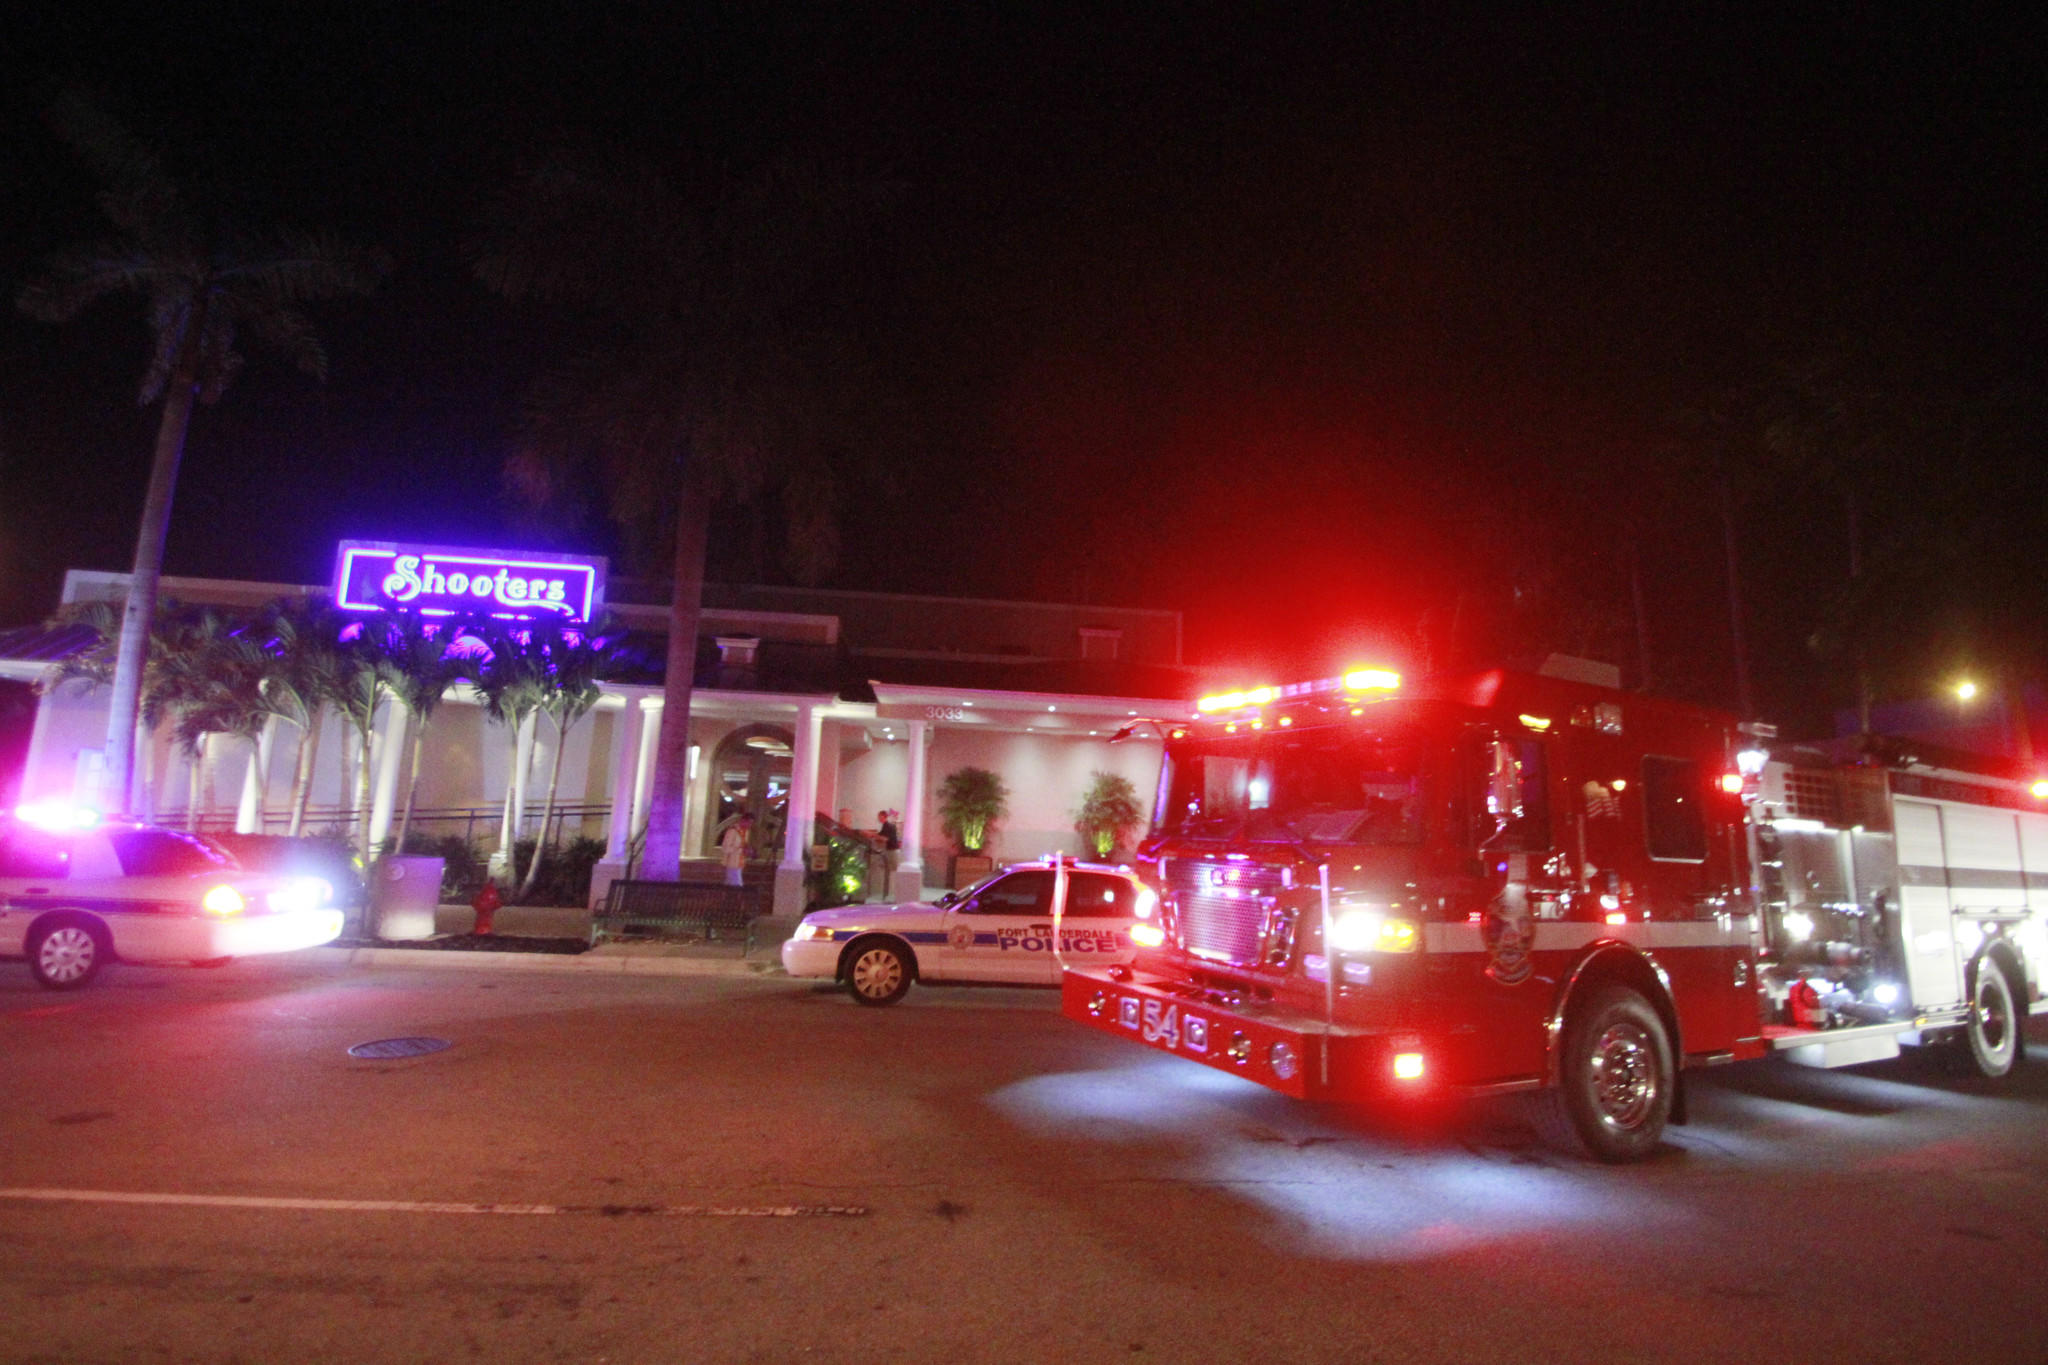 Fort Lauderdale Police investigate a shooting at Shooters Waterfront Cafe on Saturday. Police spokeswoman Det. DeAnna Greenlaw said it happened around 7:30 p.m. when the gun on a customer paying his bill fired. Detectives said the shooting appeared to be accidental.